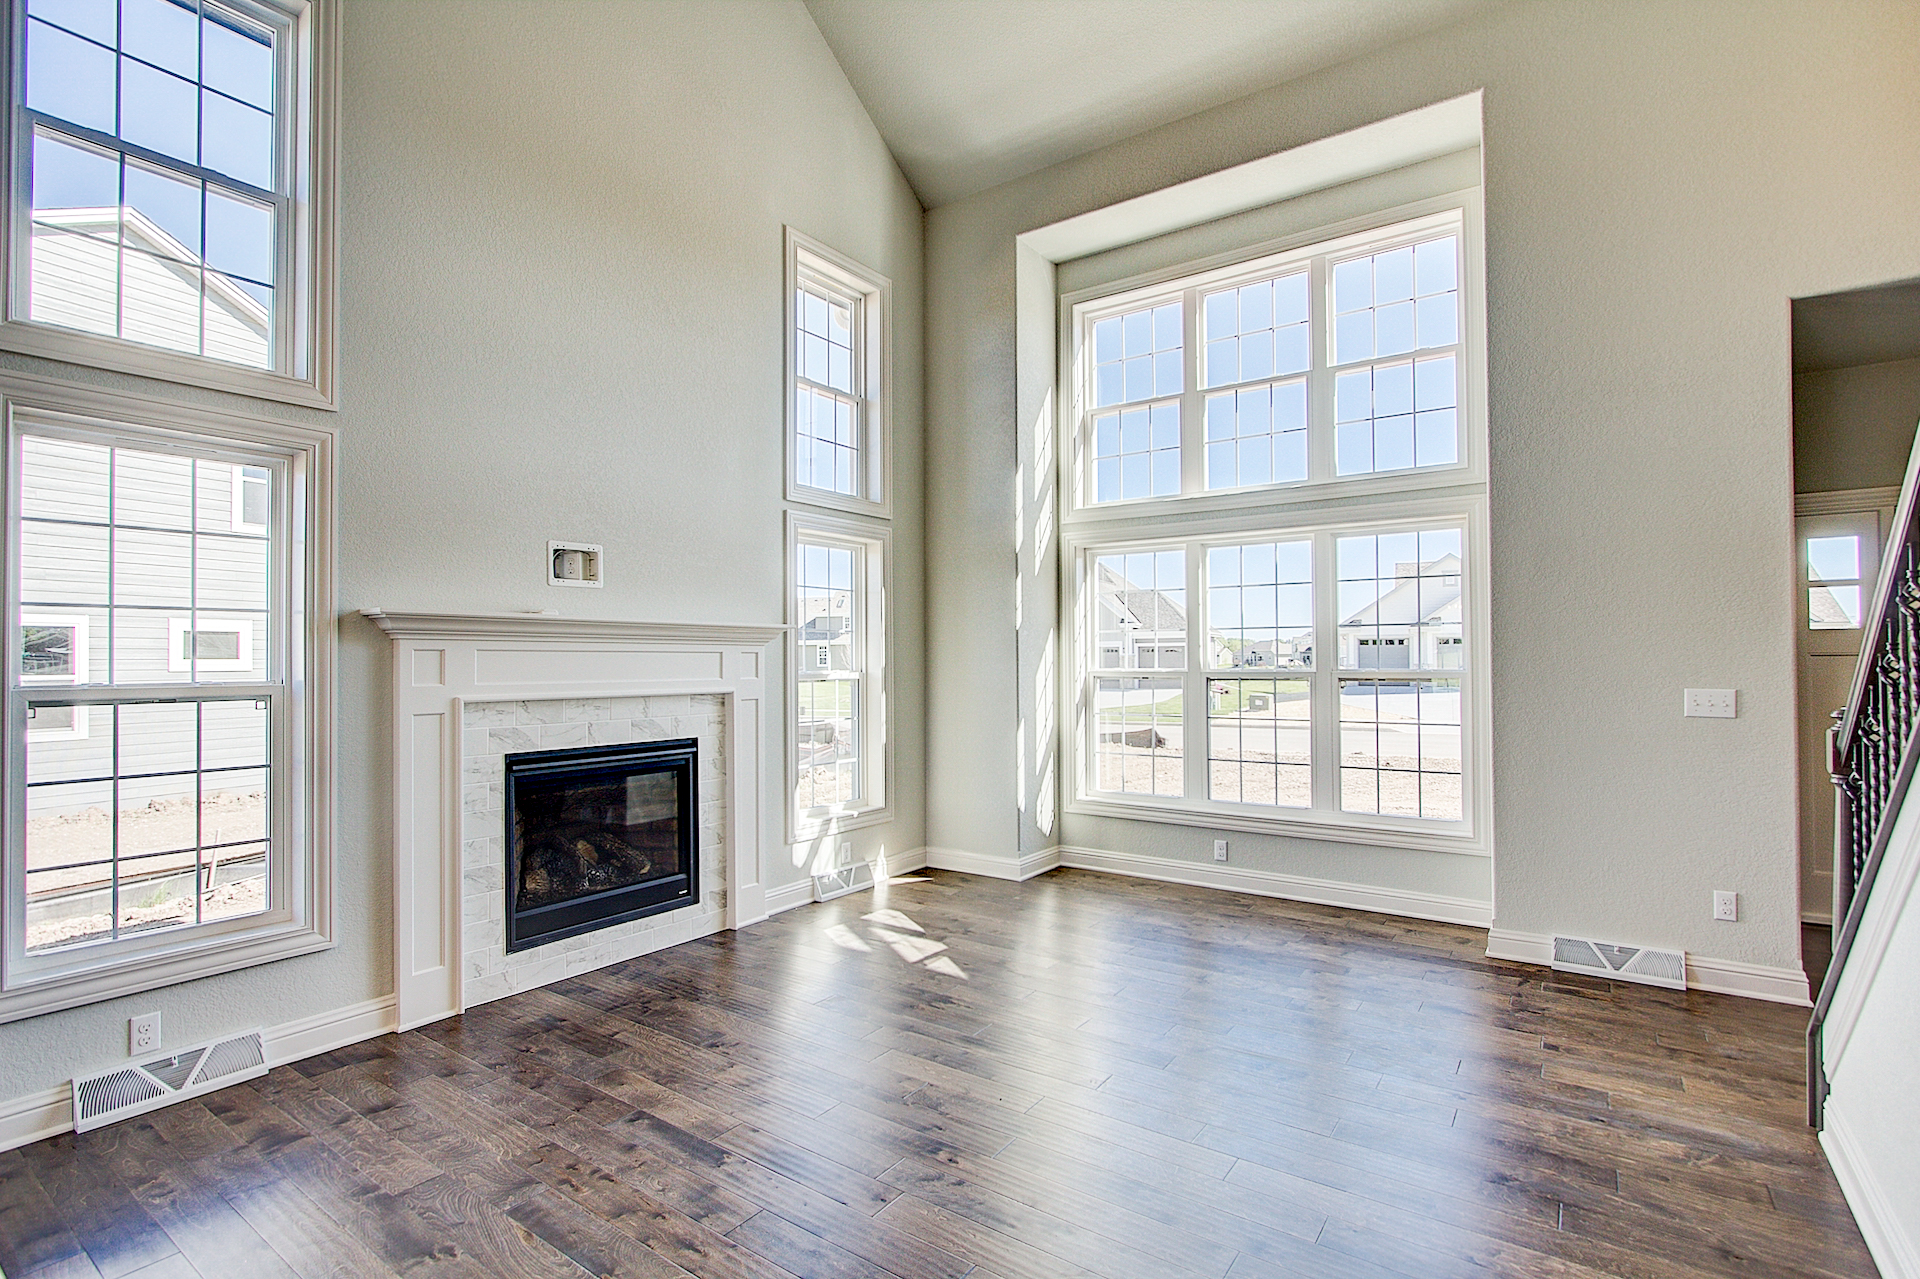 2-Story Great Room and Fireplace